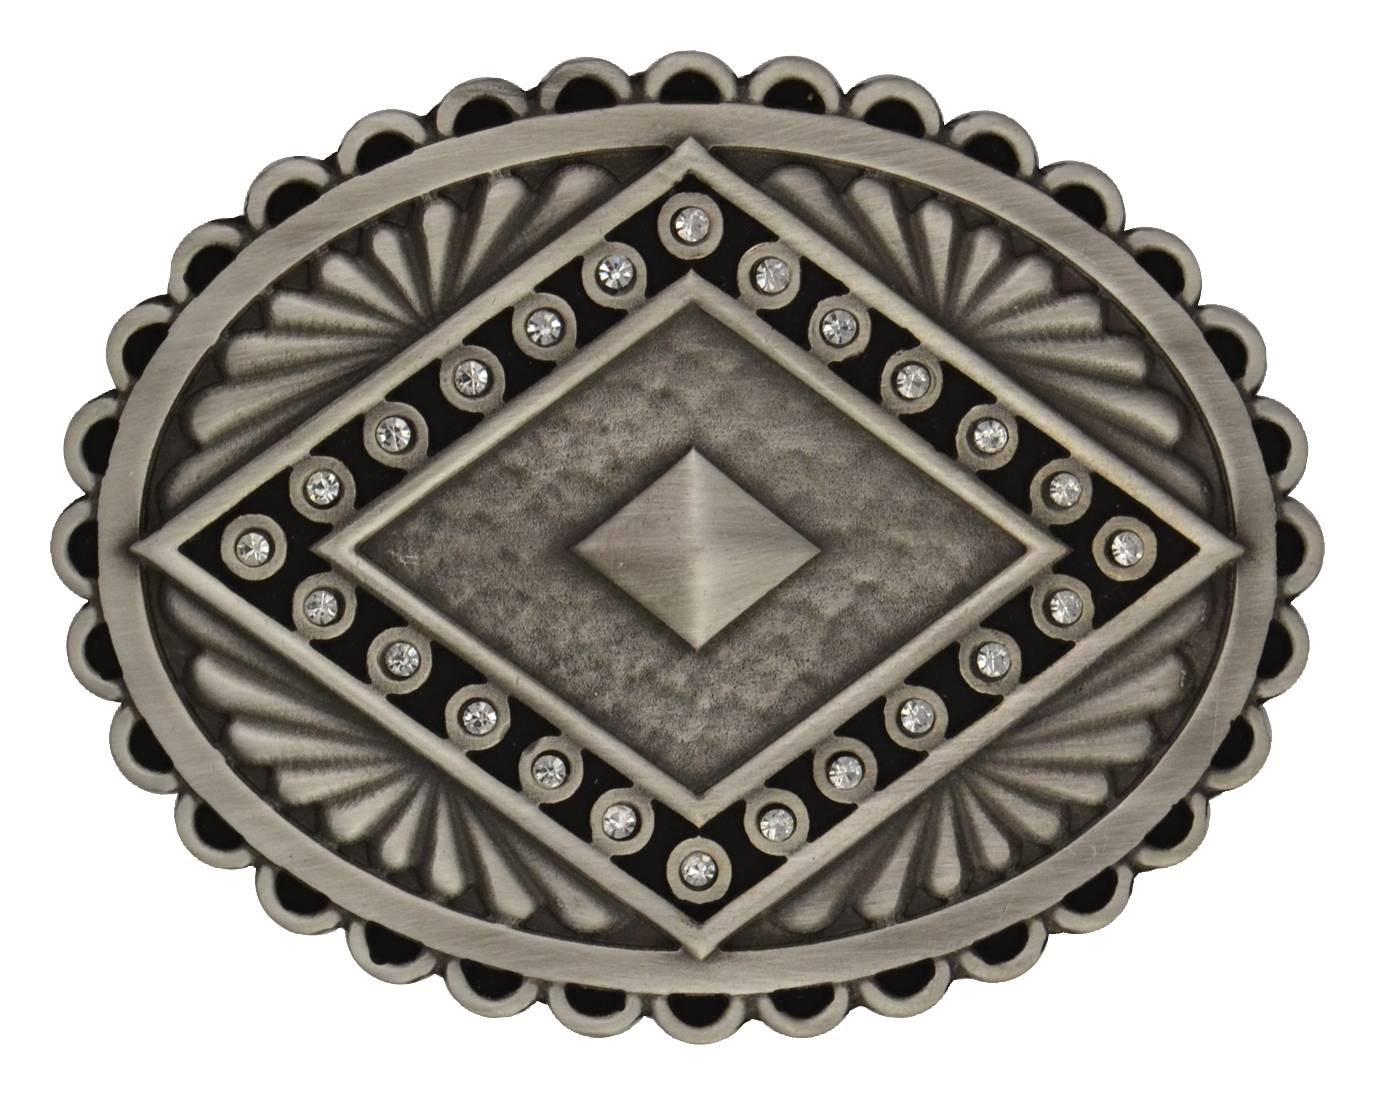 Rock 47 By Wrangler Points Of Aztec Pyramid Attitude Buckle